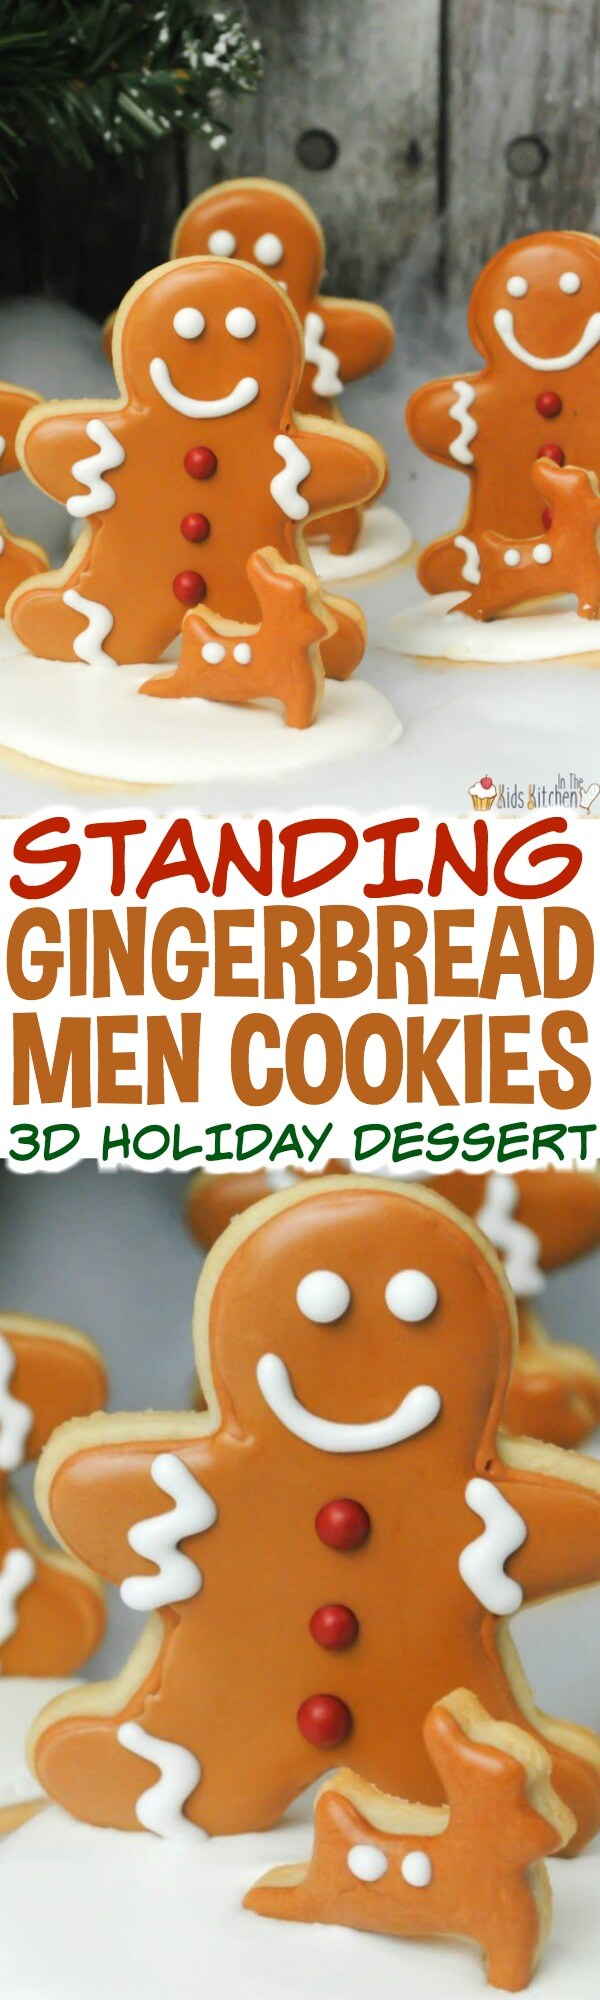 "An adorable 3D Christmas treat - these Gingerbread Men Sugar Cookies stand up on their own! Guaranteed to ""stand out"" at a holiday party!"